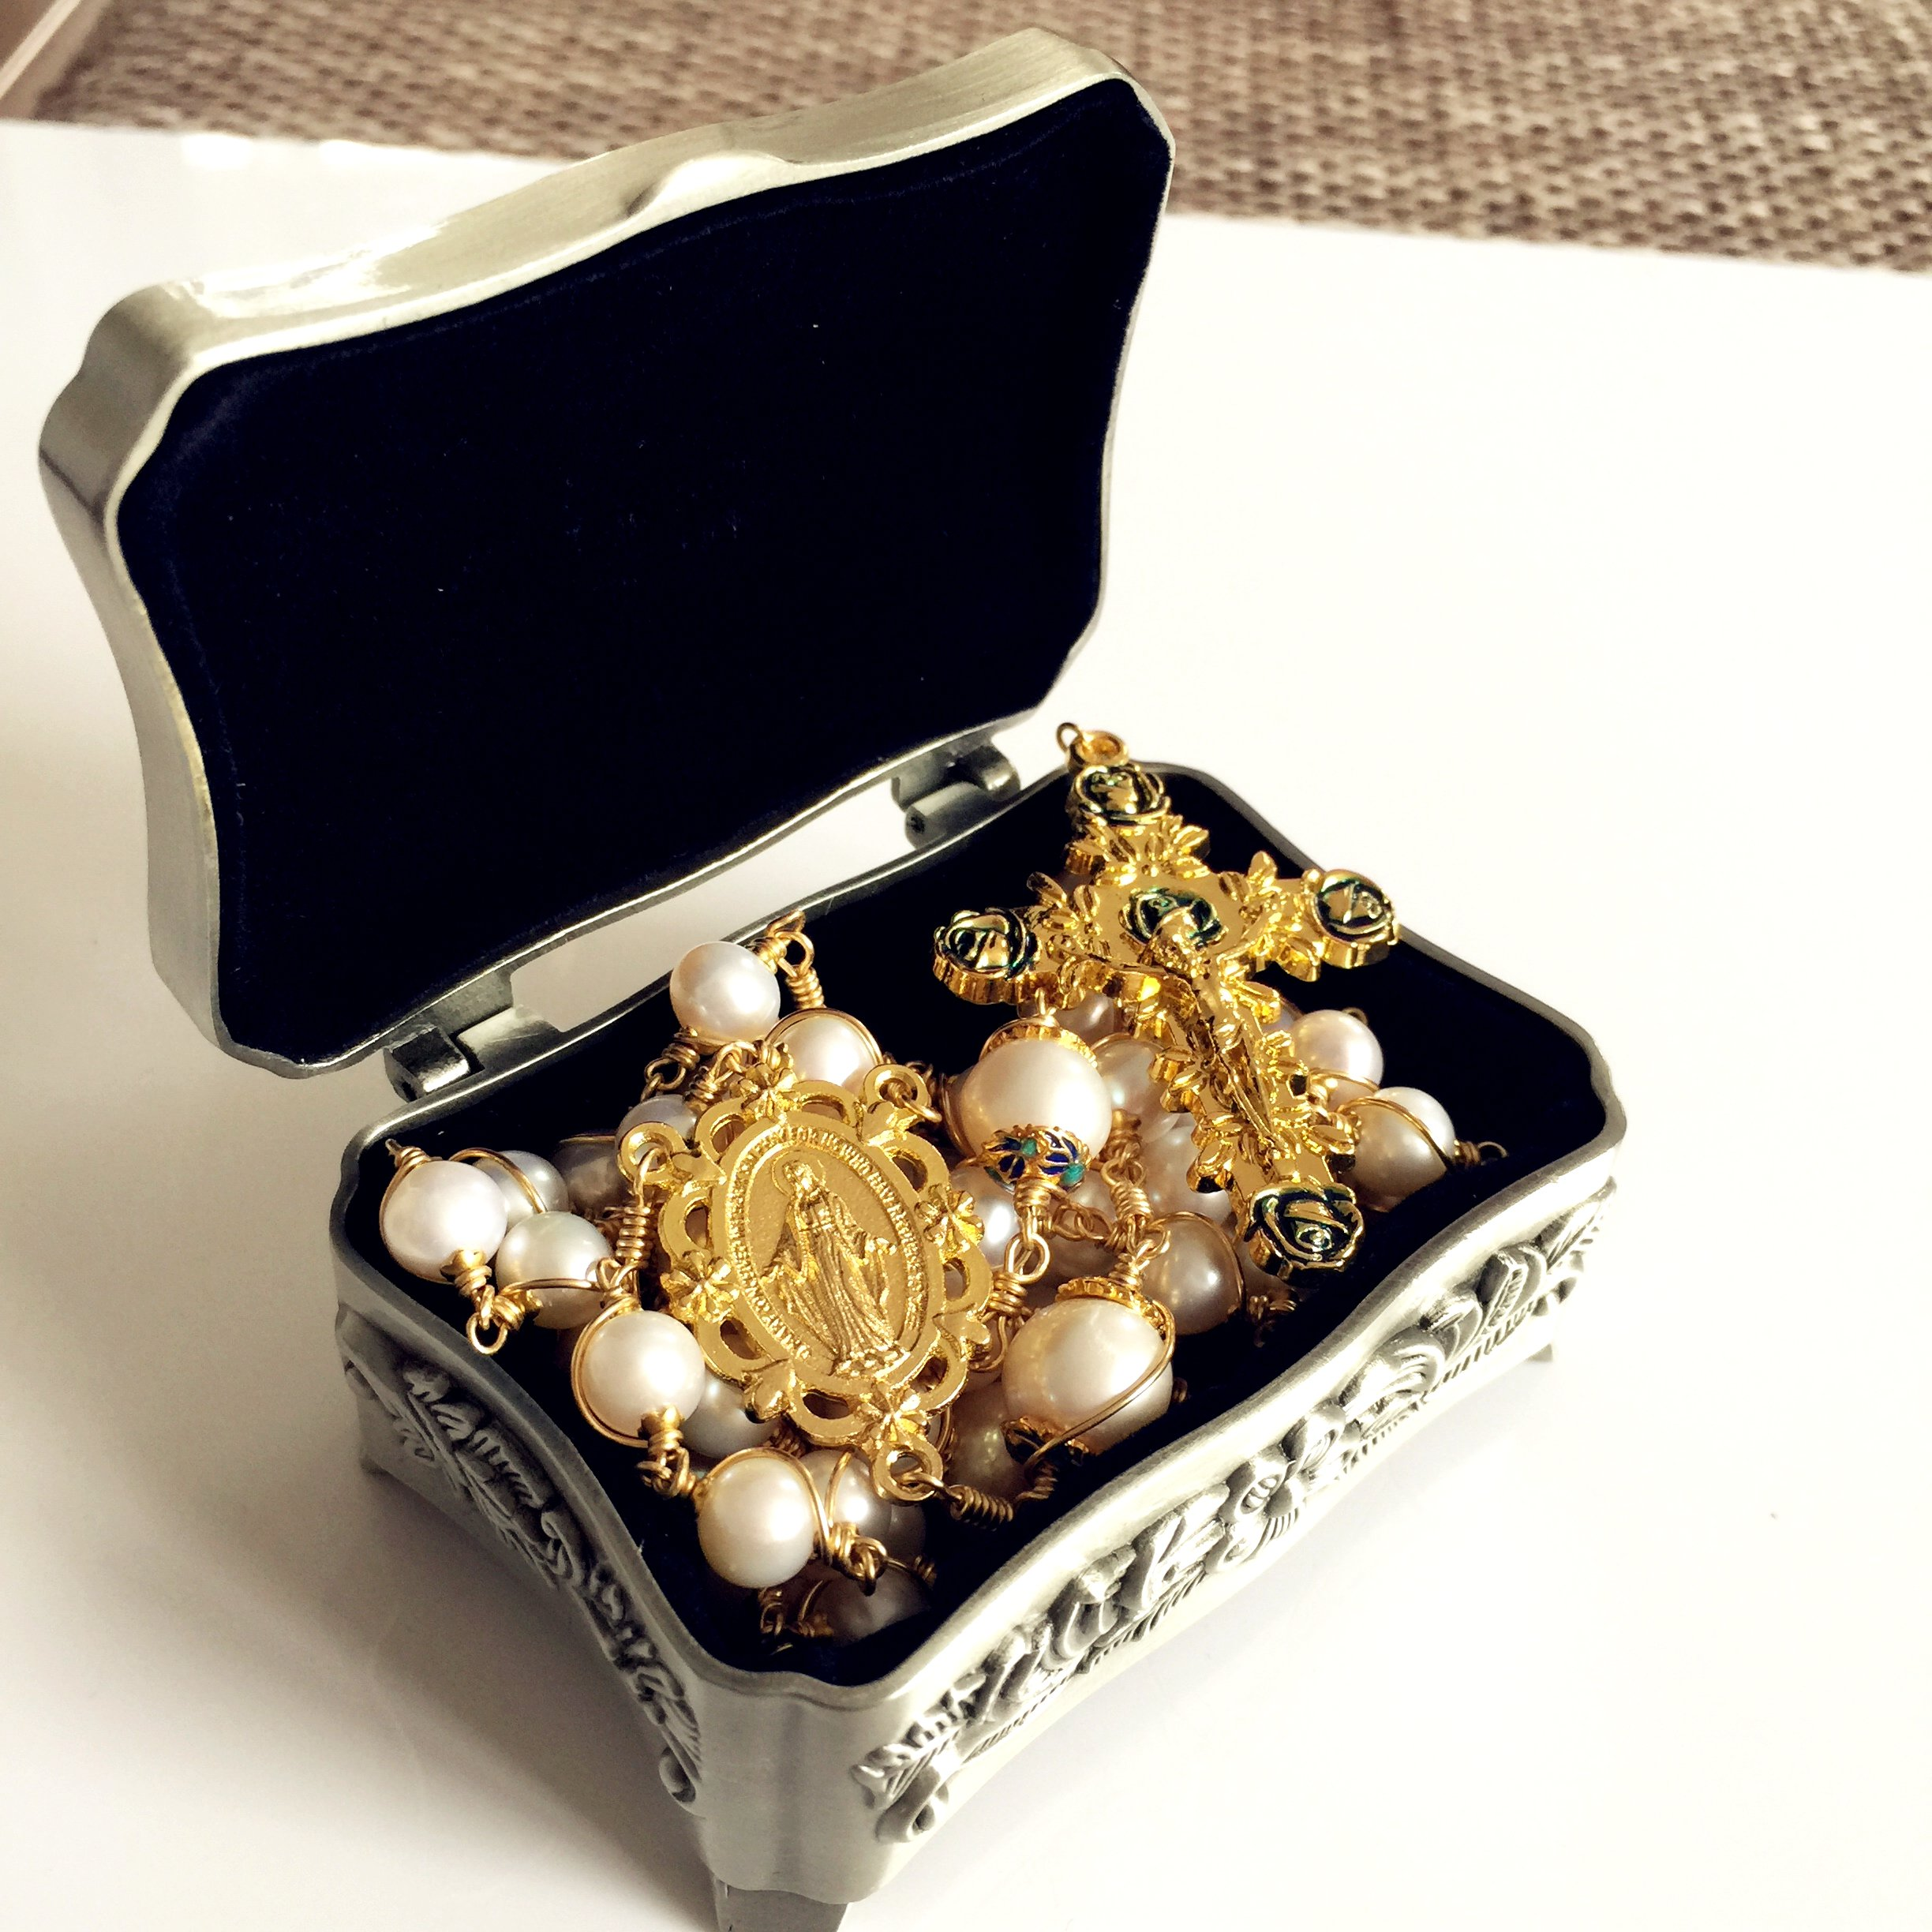 elegantmedical Handmade Rosary Plated Gold Wire Wrapped Bead AAA+ White Real Pearl Catholic Necklace Cross Gift Box by elegantmedical (Image #3)